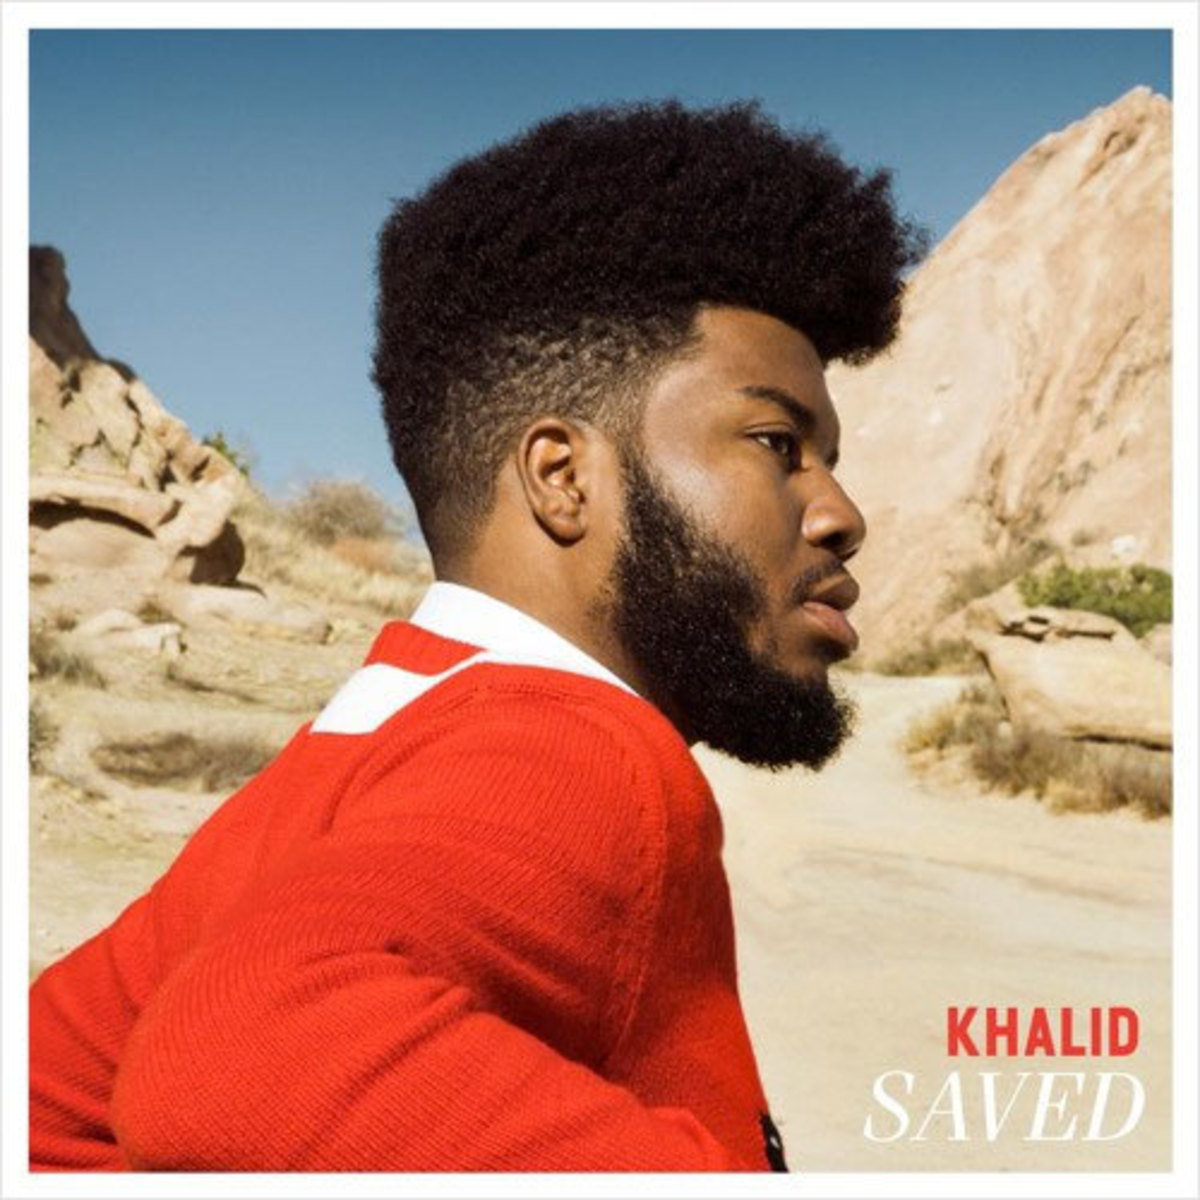 khalid-saved.jpg